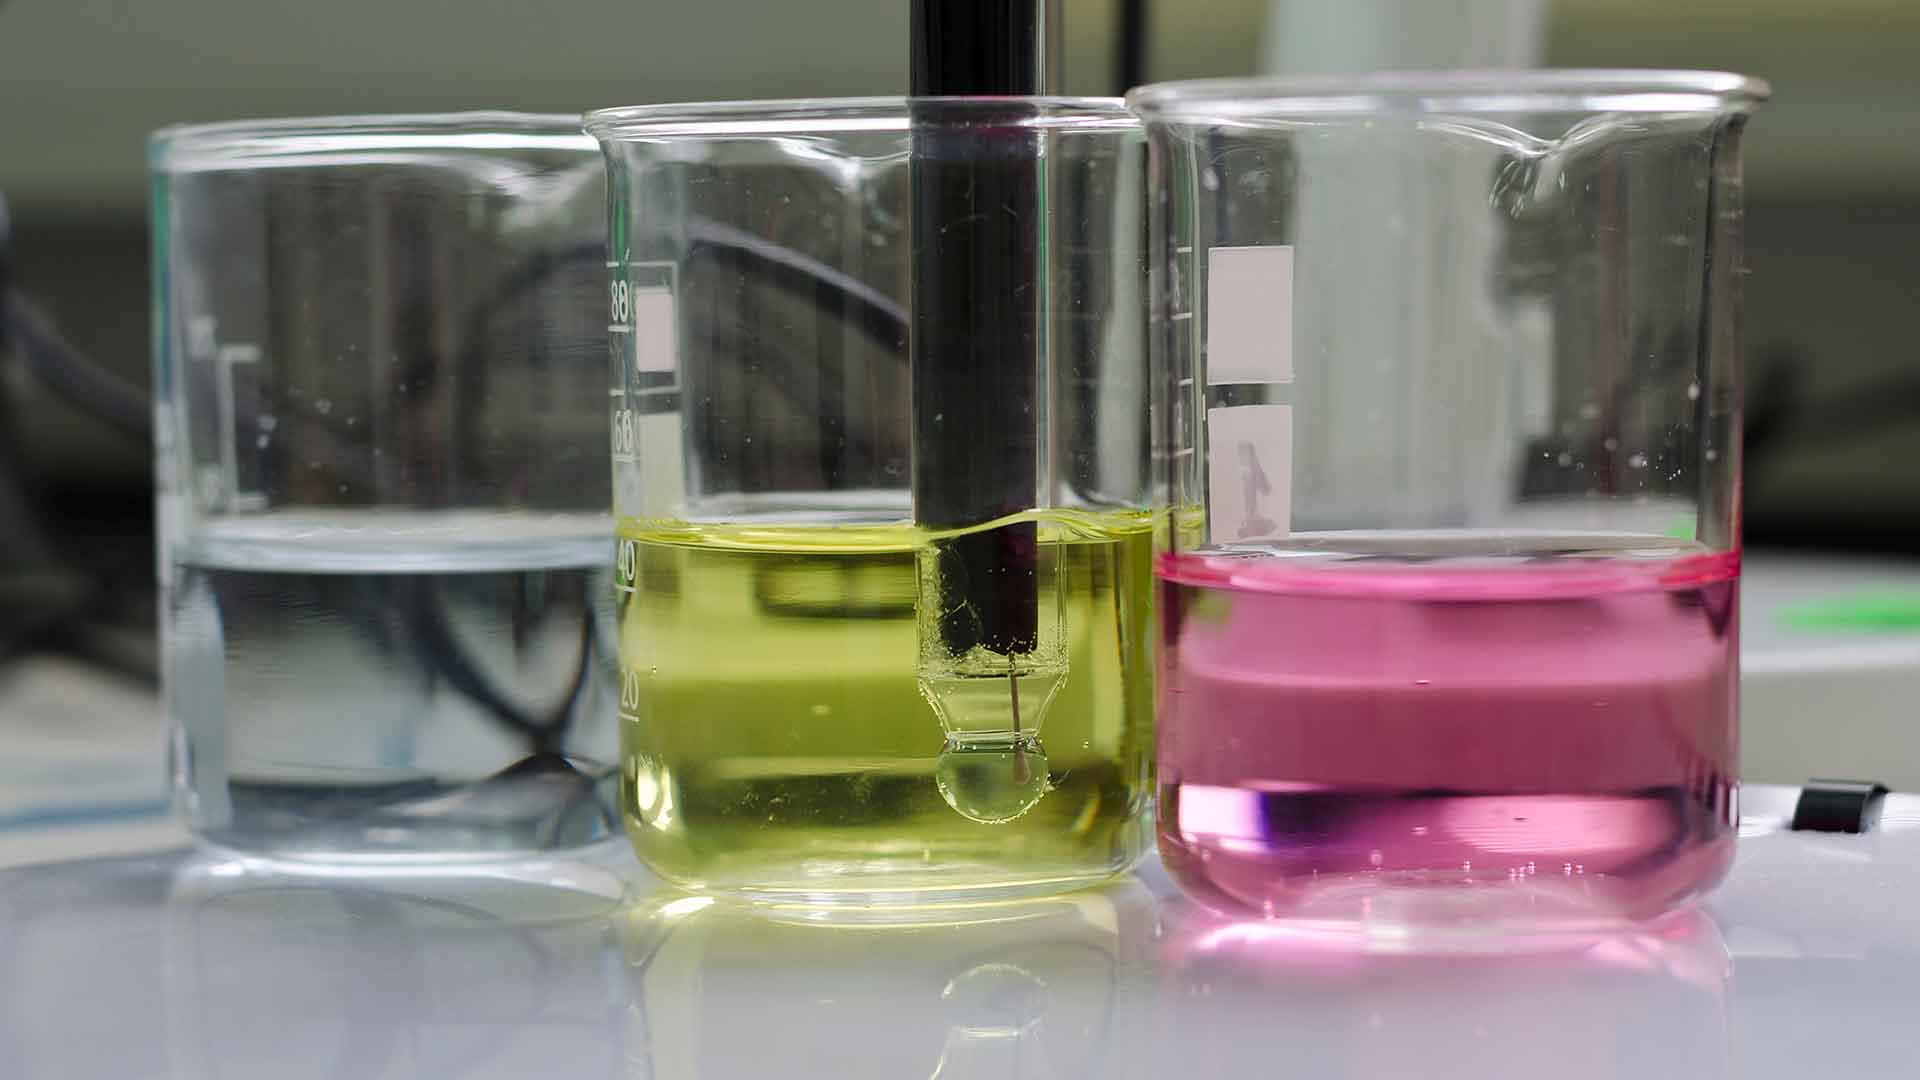 Water Treatment & Chemical Analysis